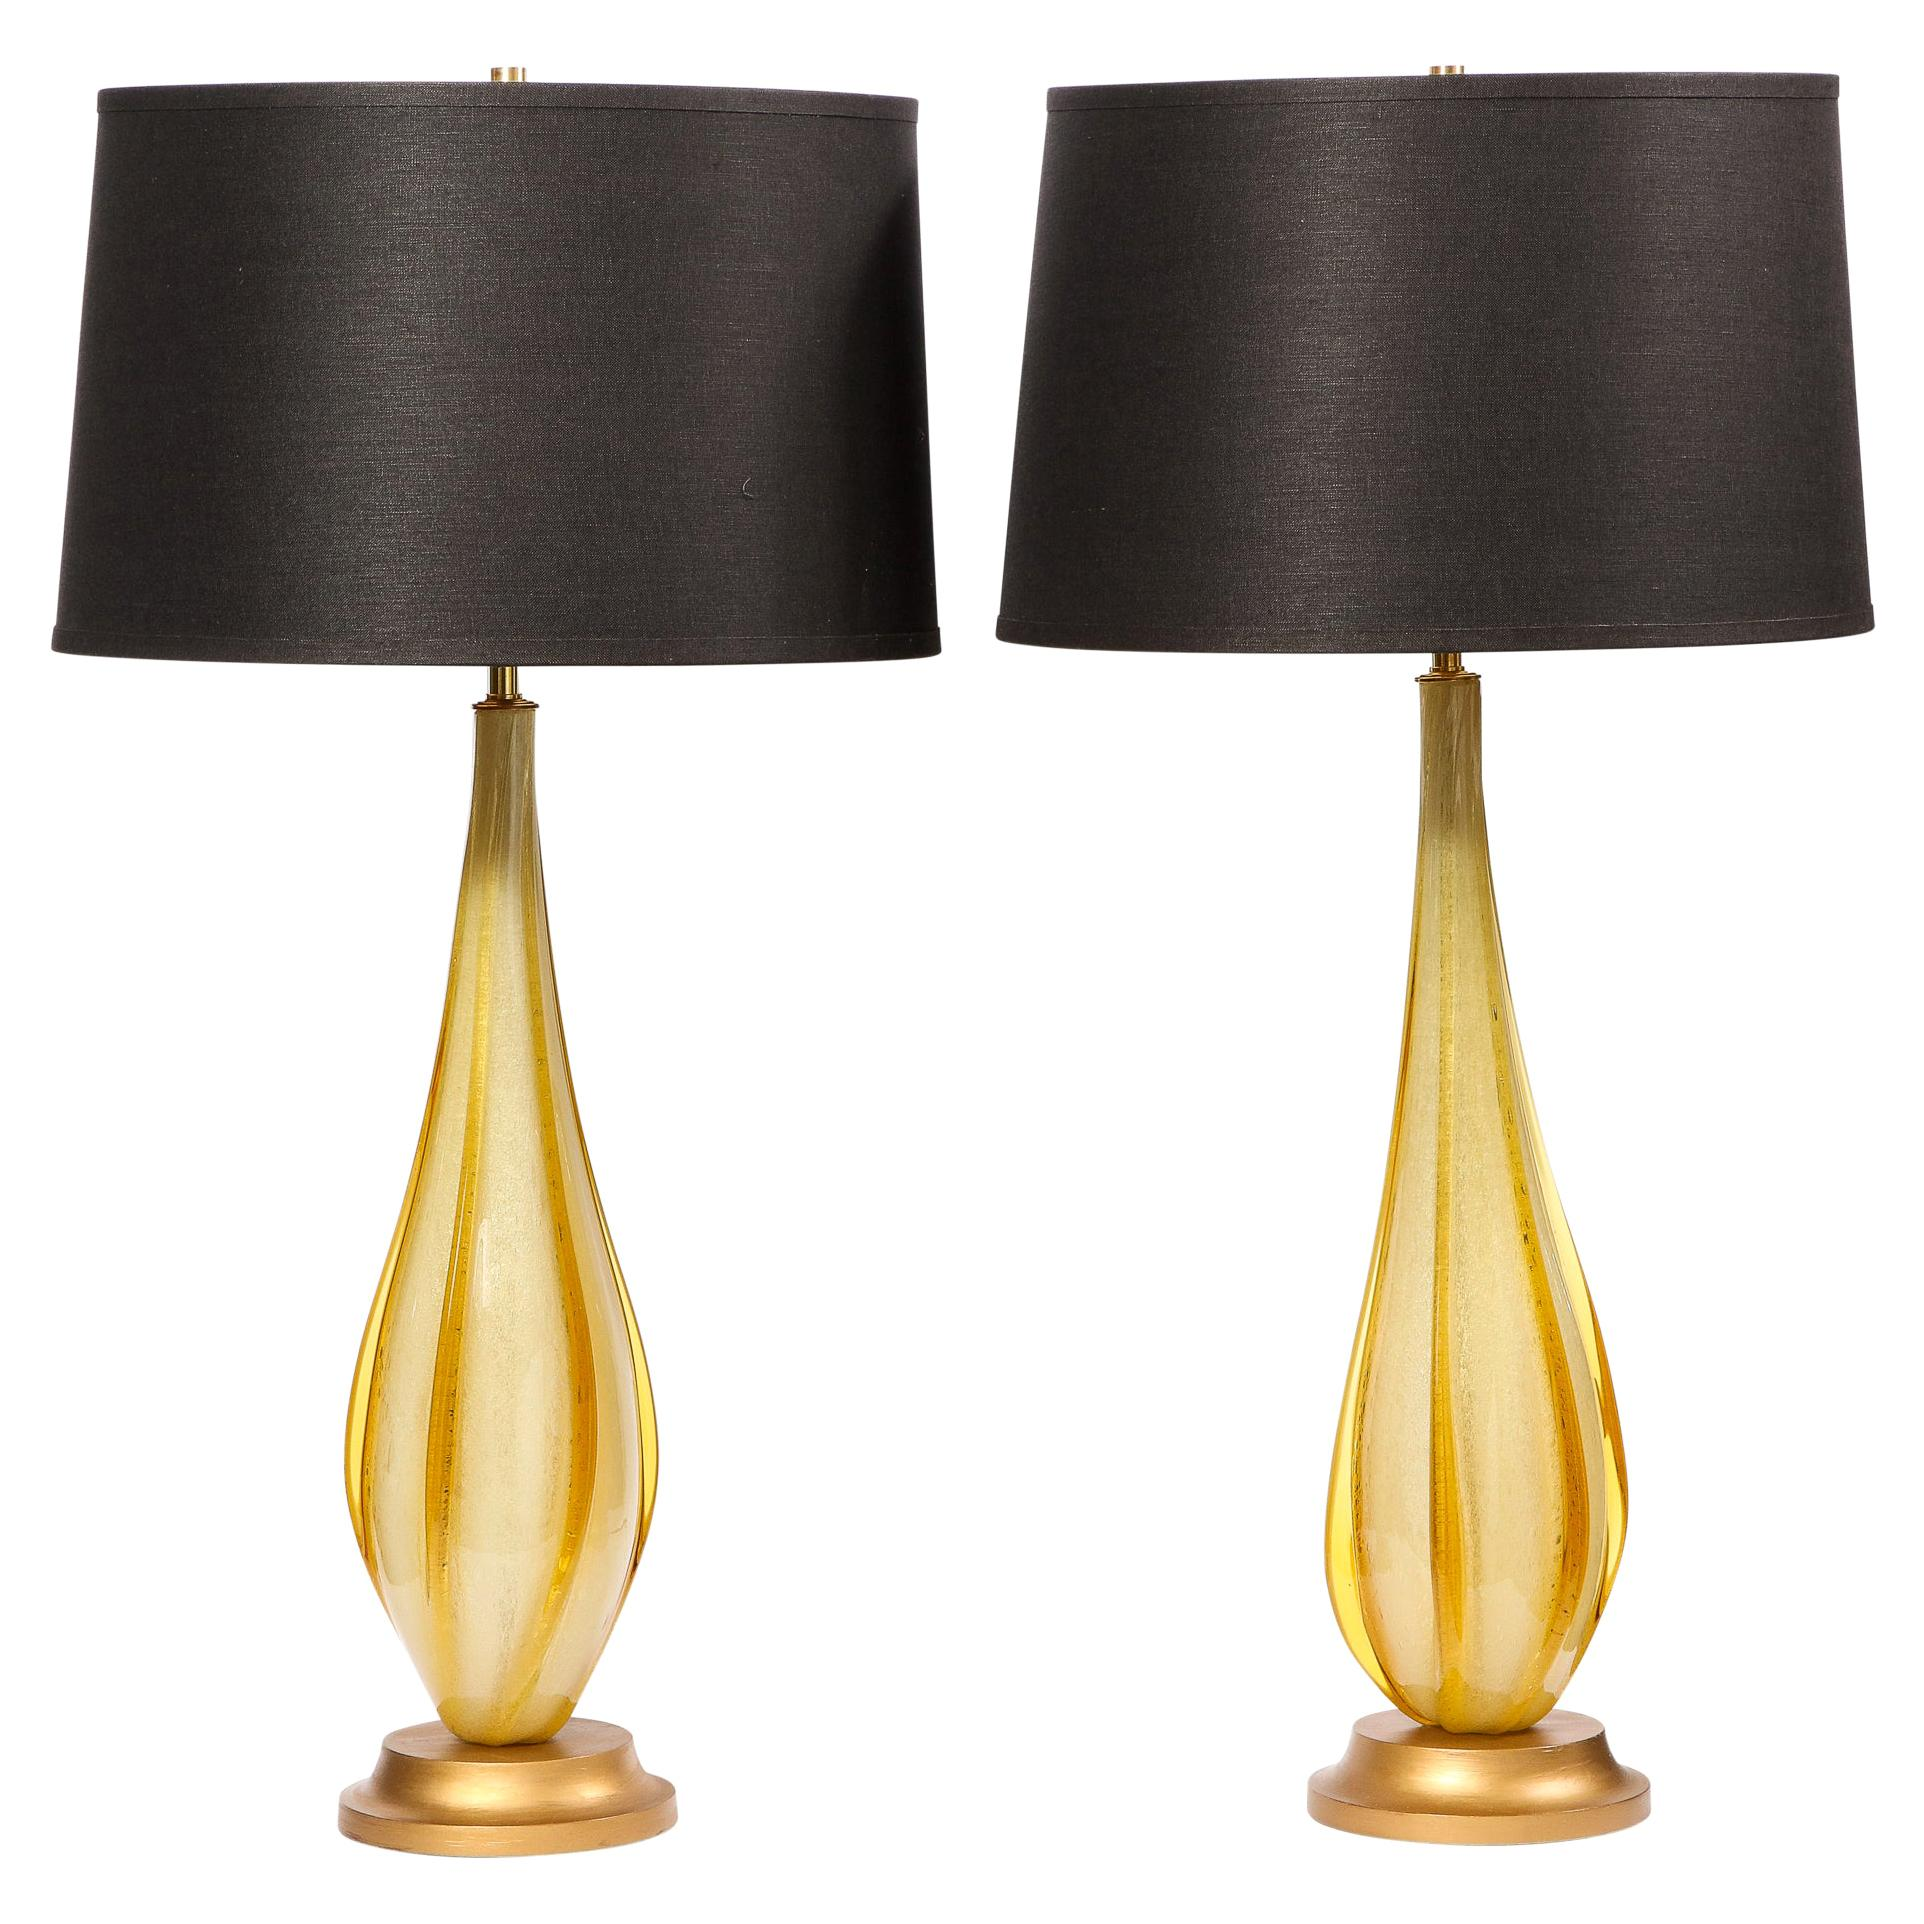 Pair of Mid-Century Modern Handblown Murano Table Lamps with Brass Fittings